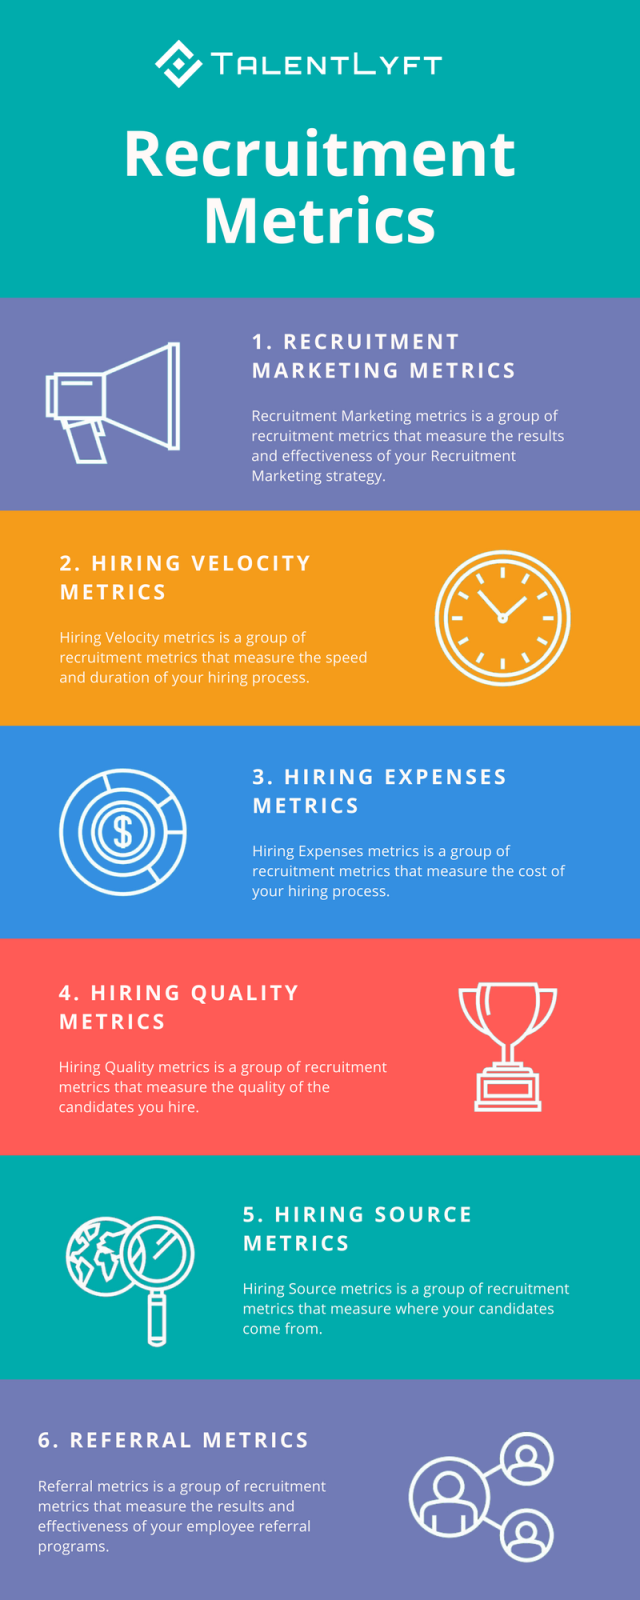 Recruiting-metrics-infographic-1